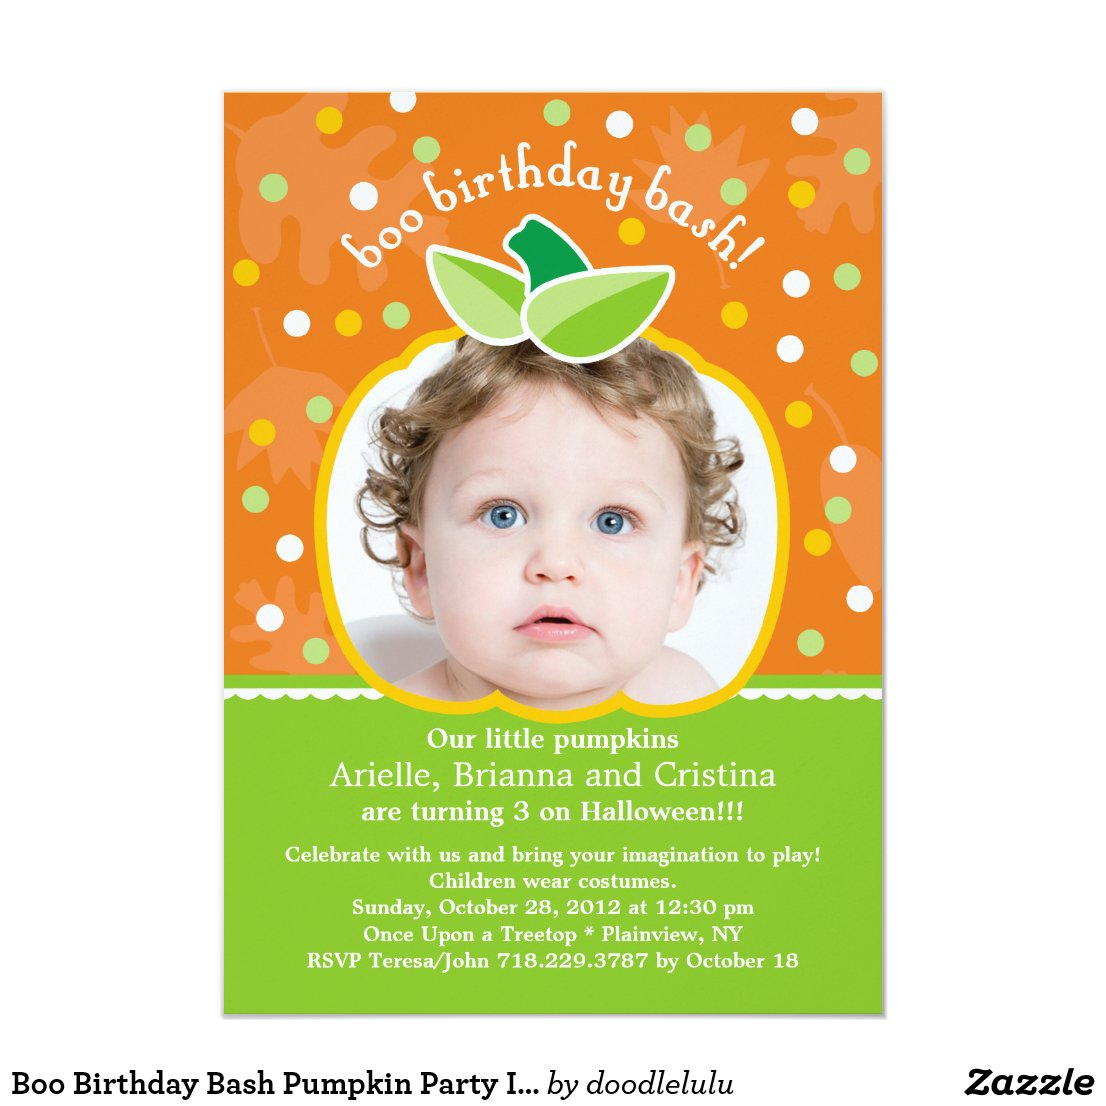 Boo Birthday Bash Pumpkin Party Invitation